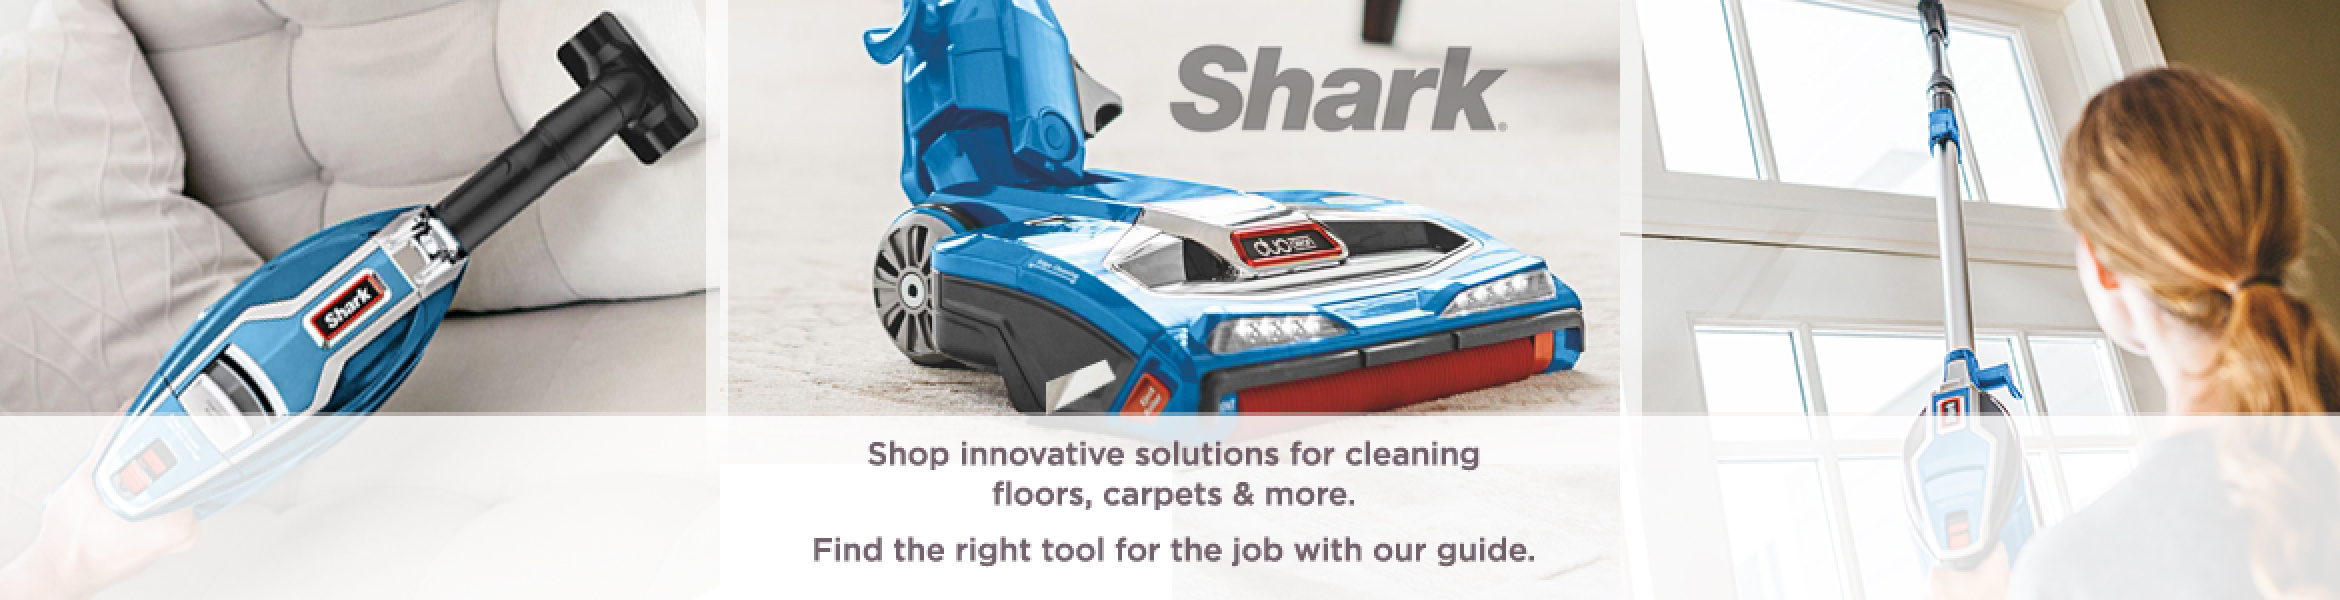 Shark. Shop innovative solutions for cleaning floors, carpets & more.   Find the right tool for the job with our guide.